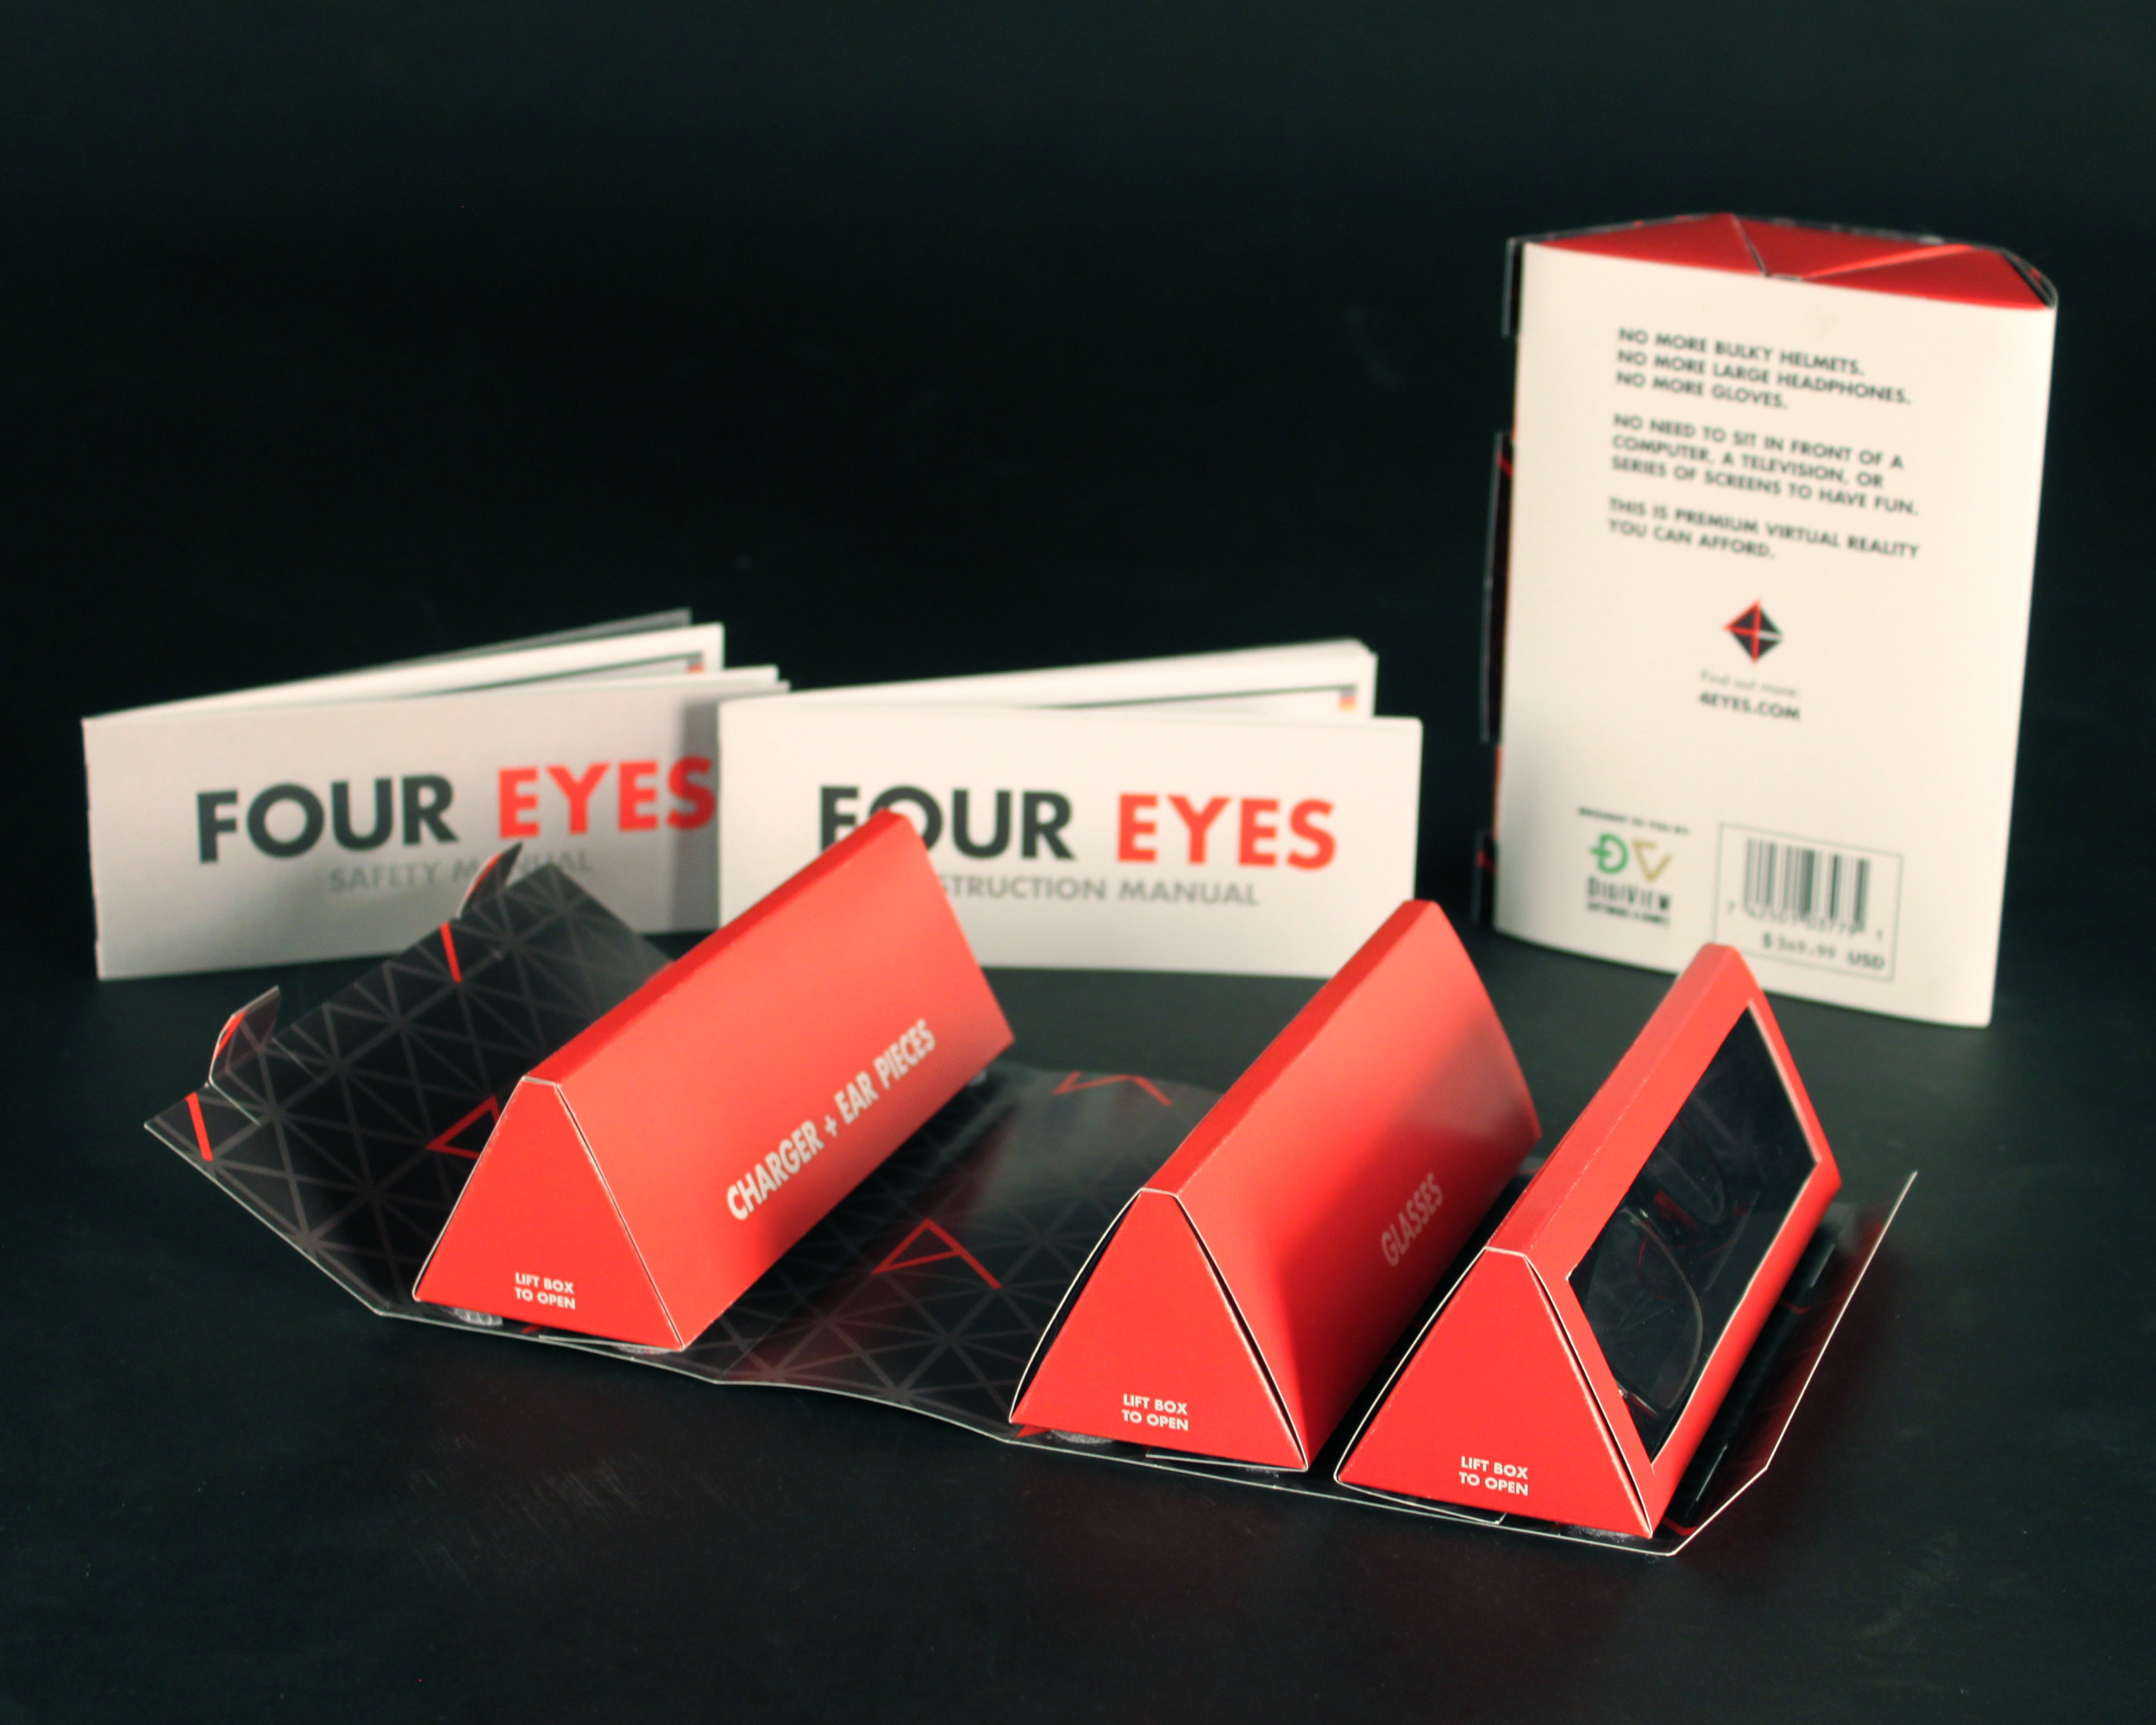 Four Eyes Packaging & Collateral